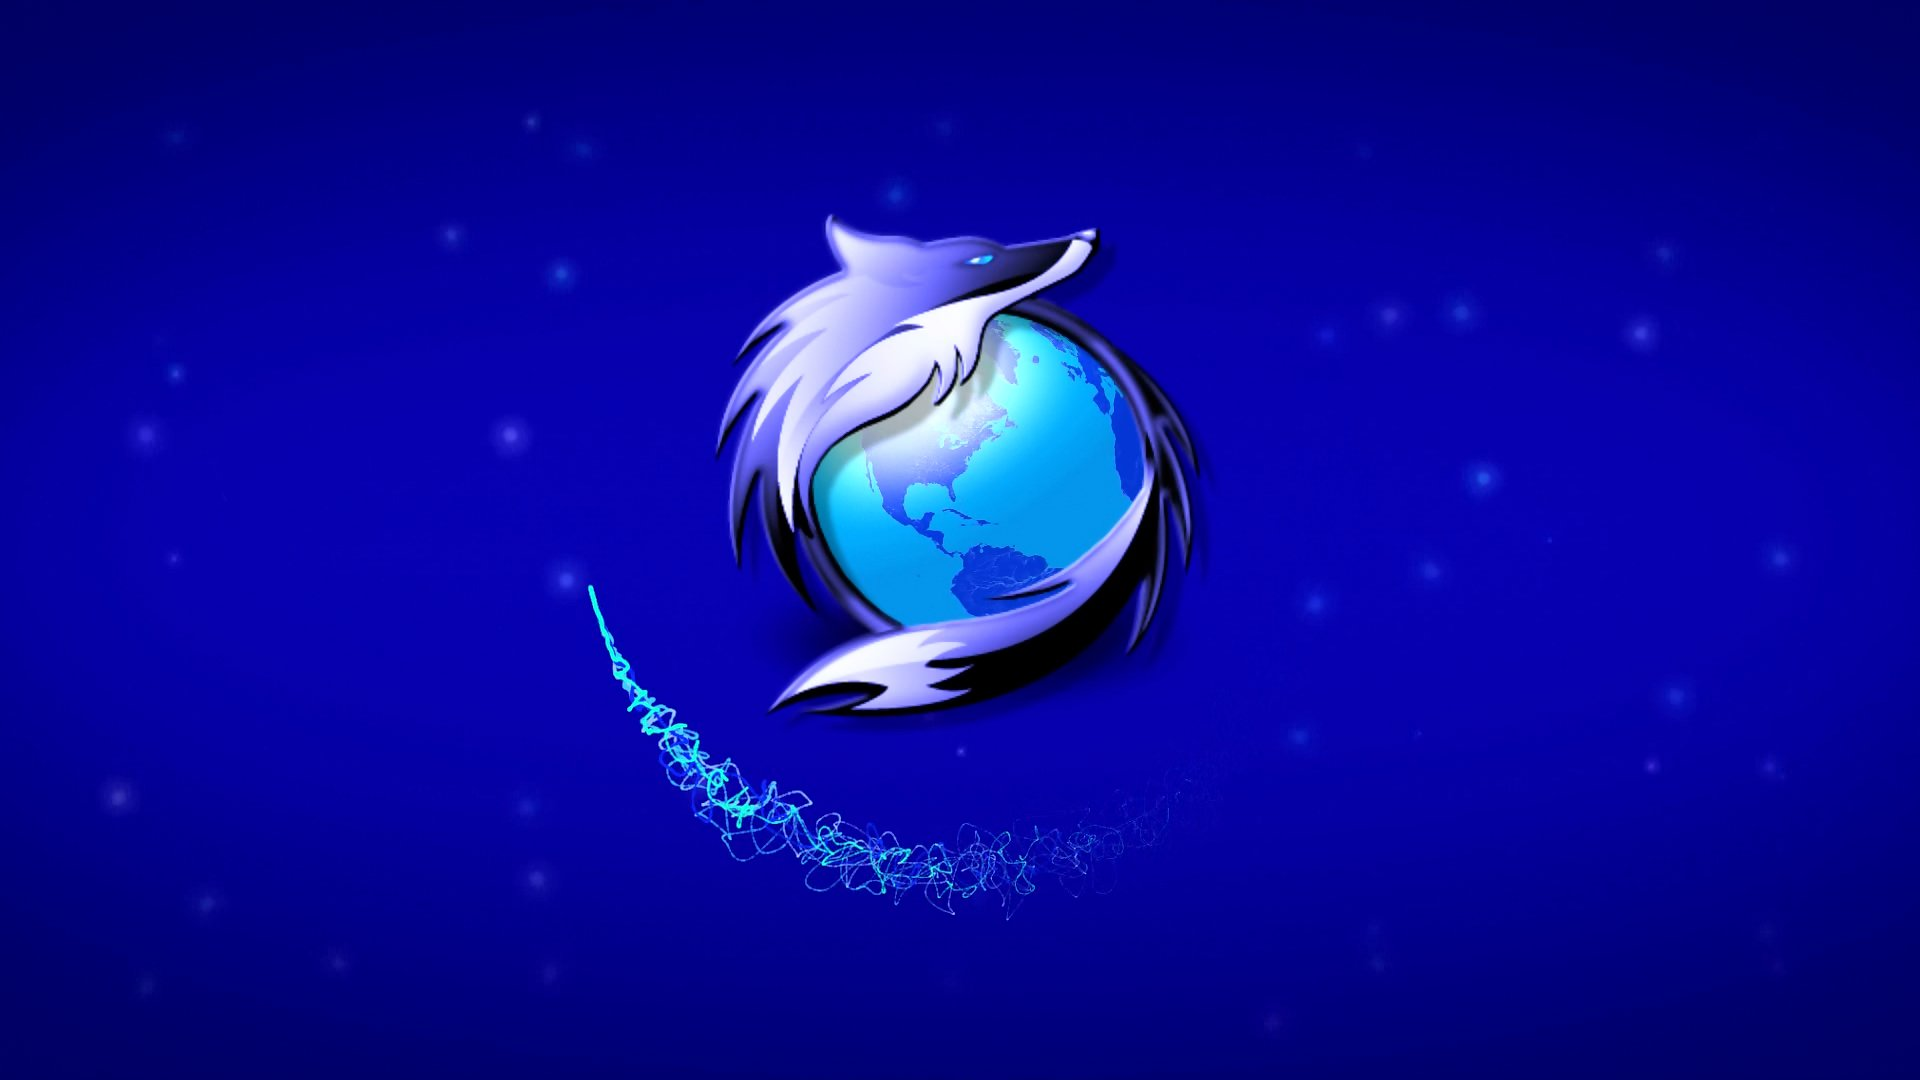 Firefox hd wallpaper background image 1920x1080 id - How to change firefox background image ...